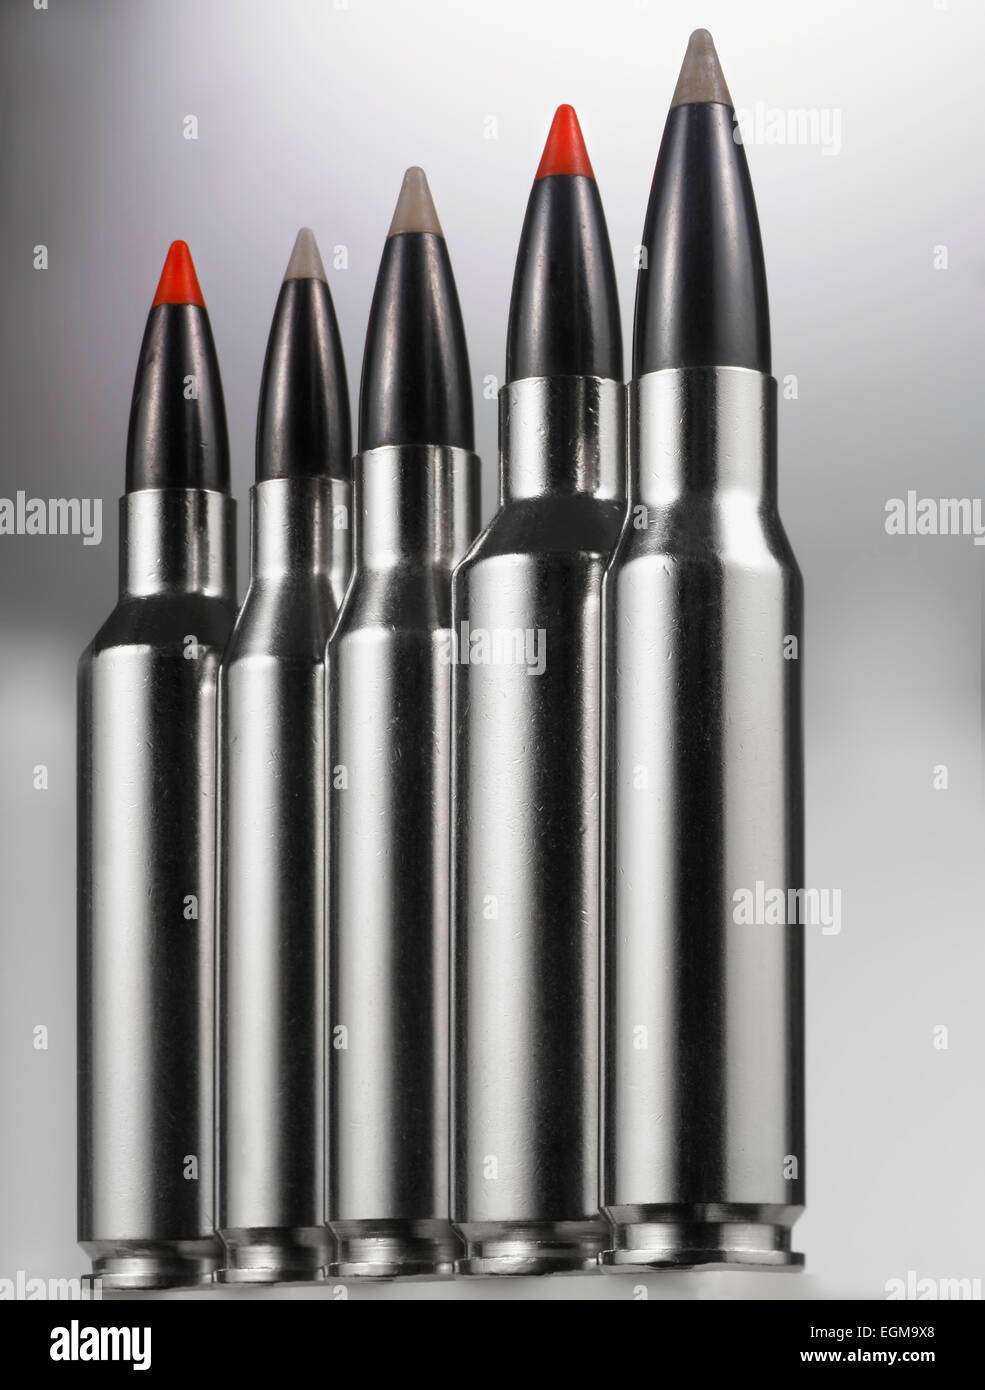 Rifle Bullets, Close-Up - Stock Image